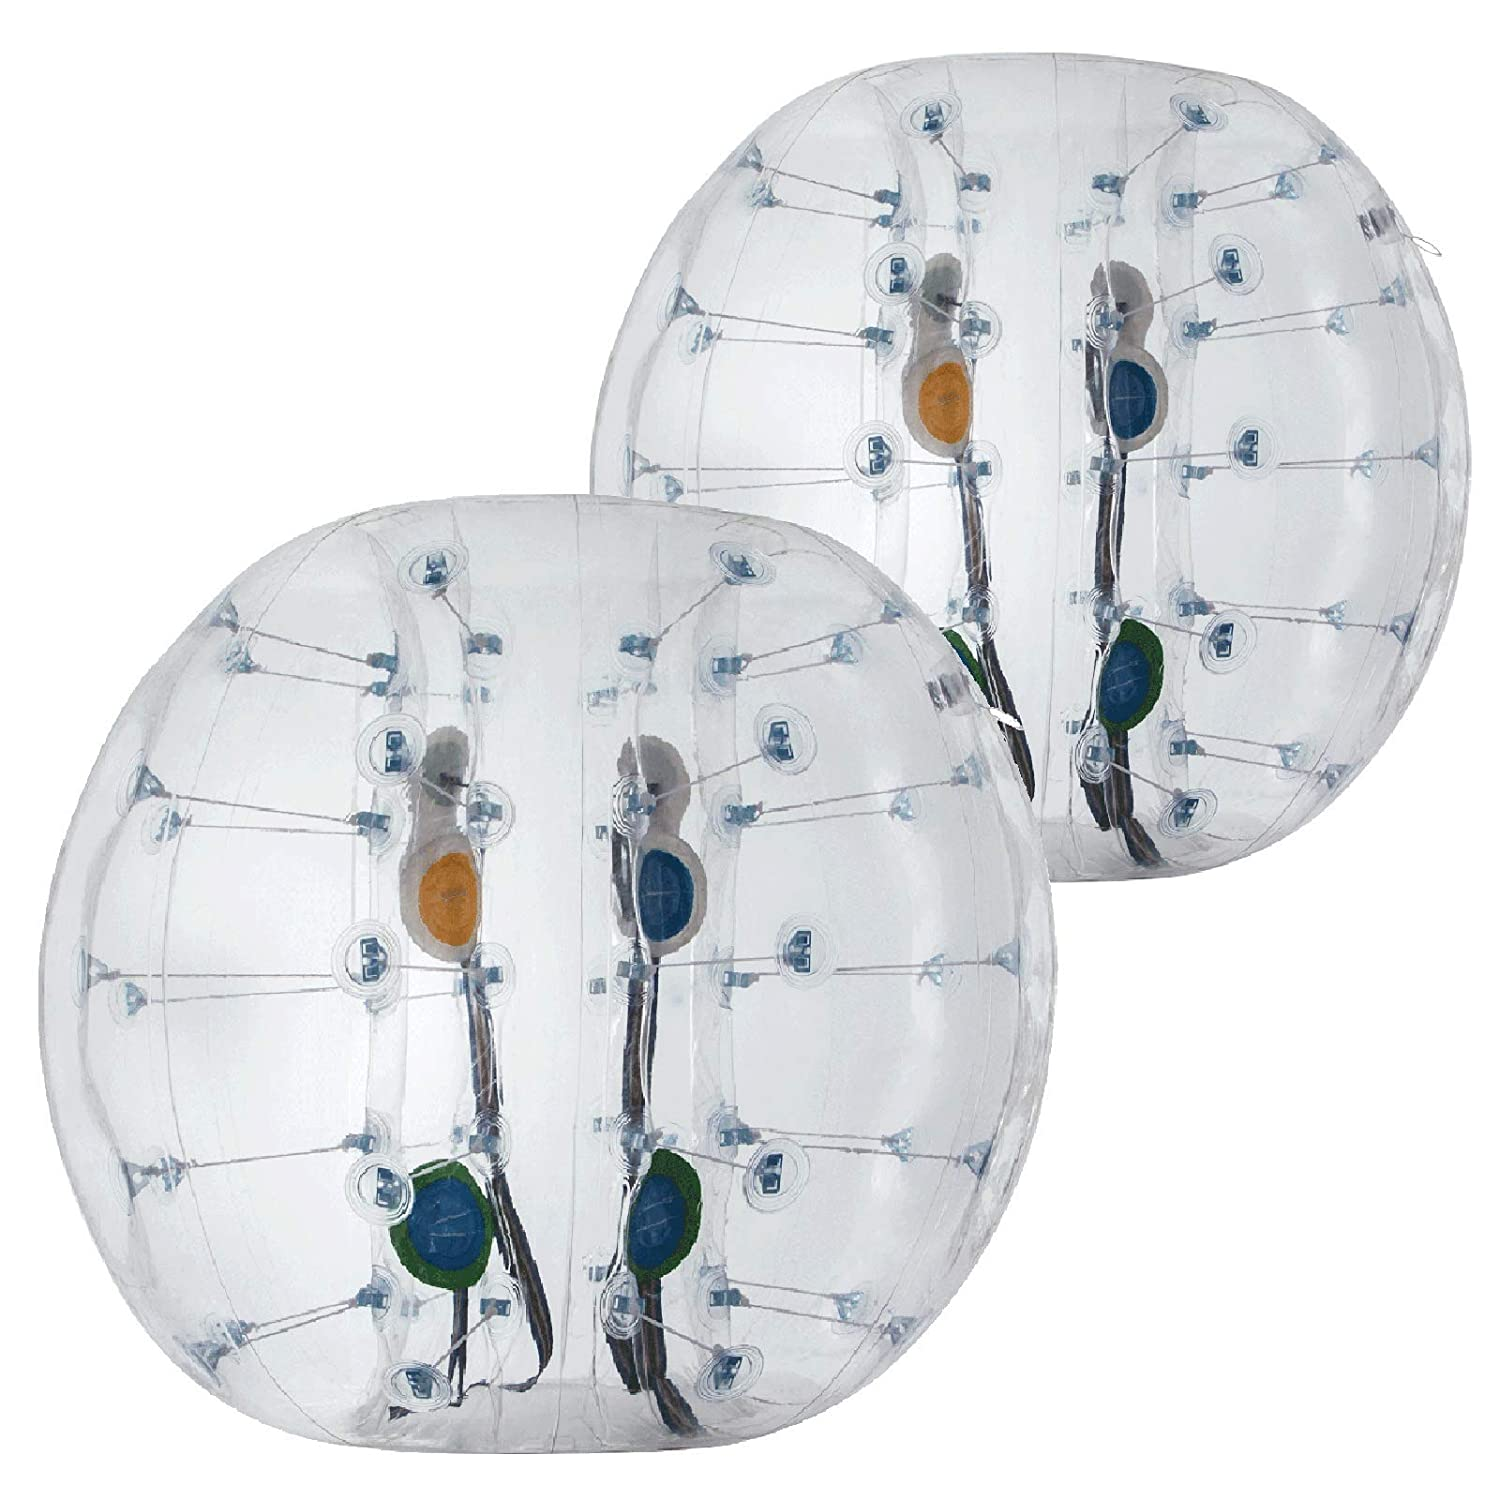 Popsport Inflatable Bumper Ball Set 4FT Bubble Soccer Ball Suit 2 Pack 0.8mm Eco-Friendly PVC Zorb Ball Human Hamster Ball for Adults and Kids 4FT 2Pcs